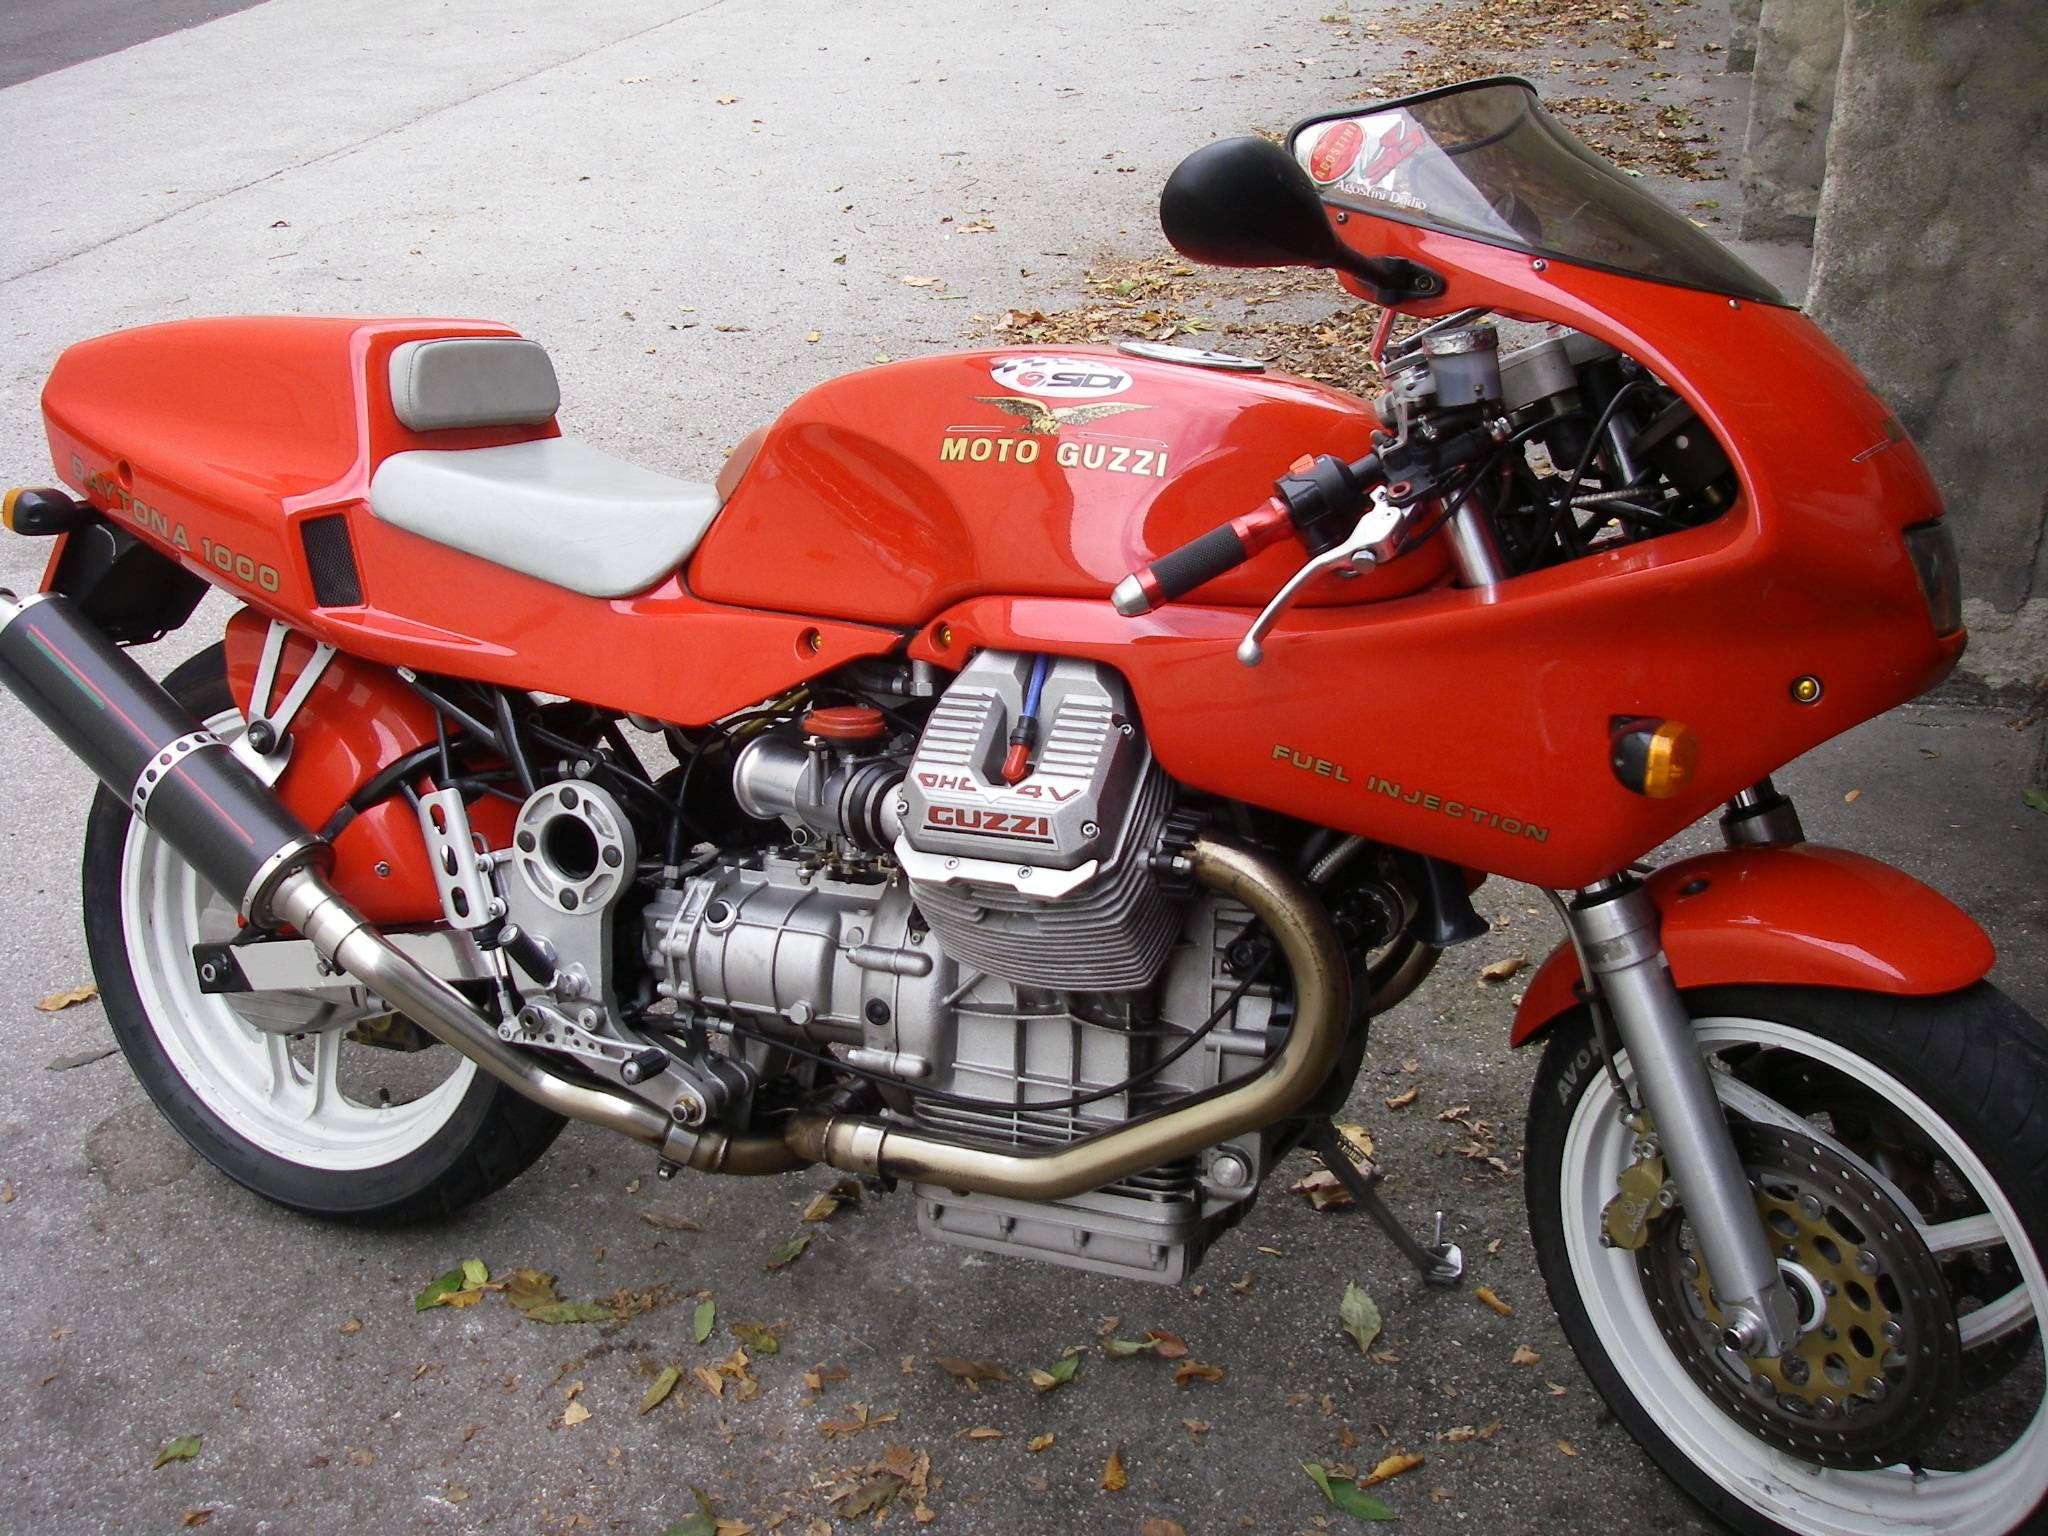 Moto Guzzi 1000 Daytona Injection images #108546